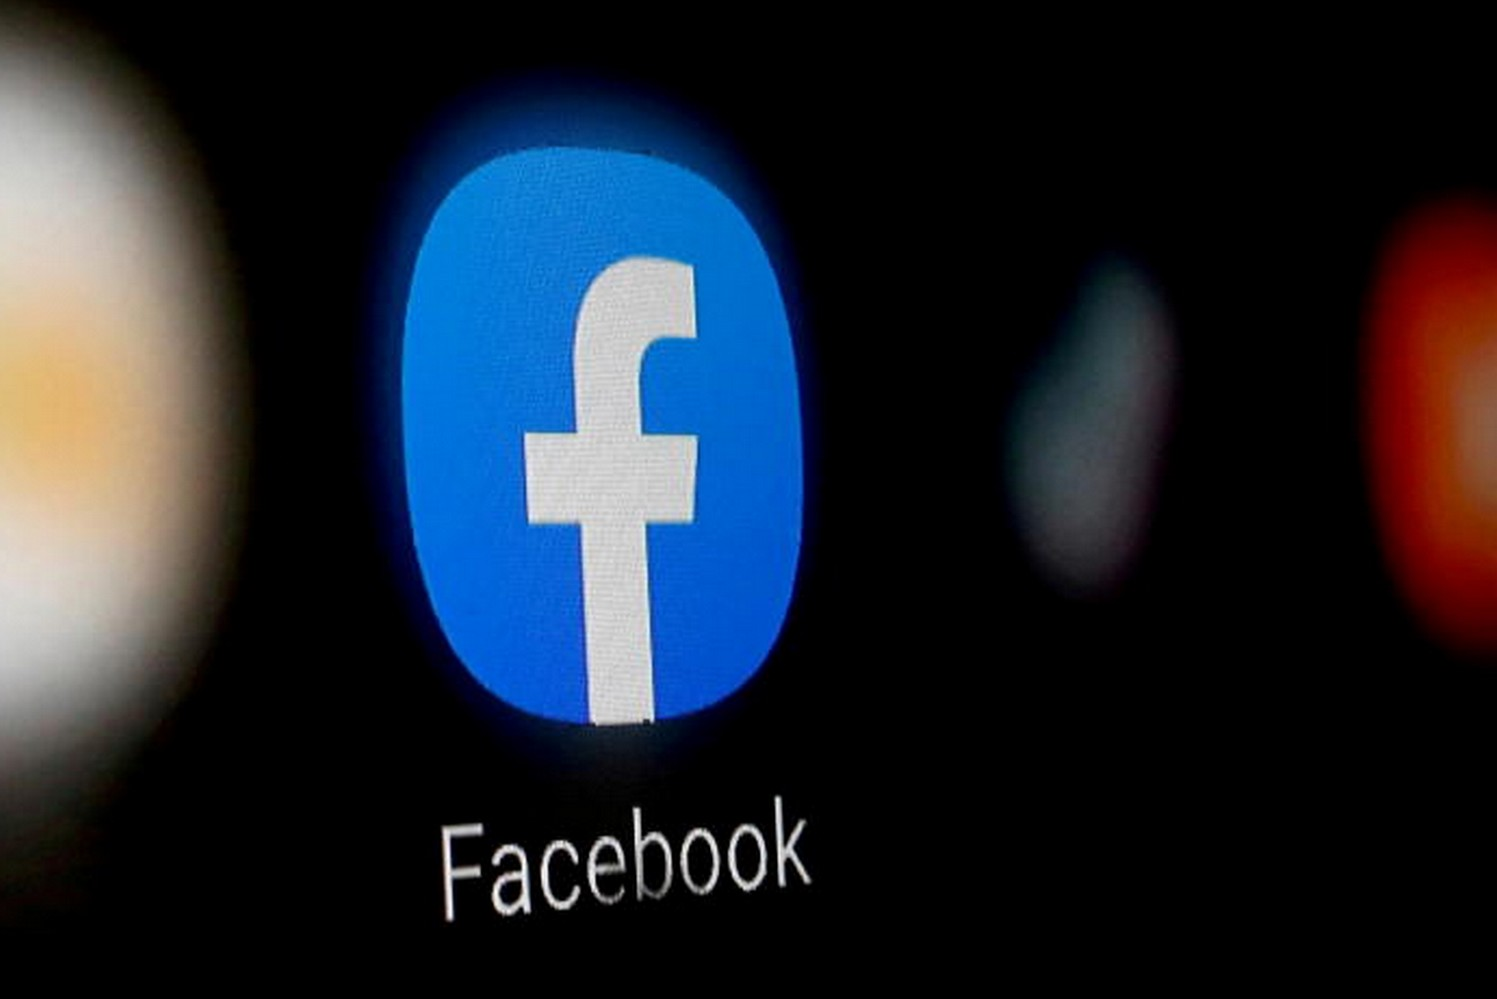 Australia to require parental consent for minors using social media